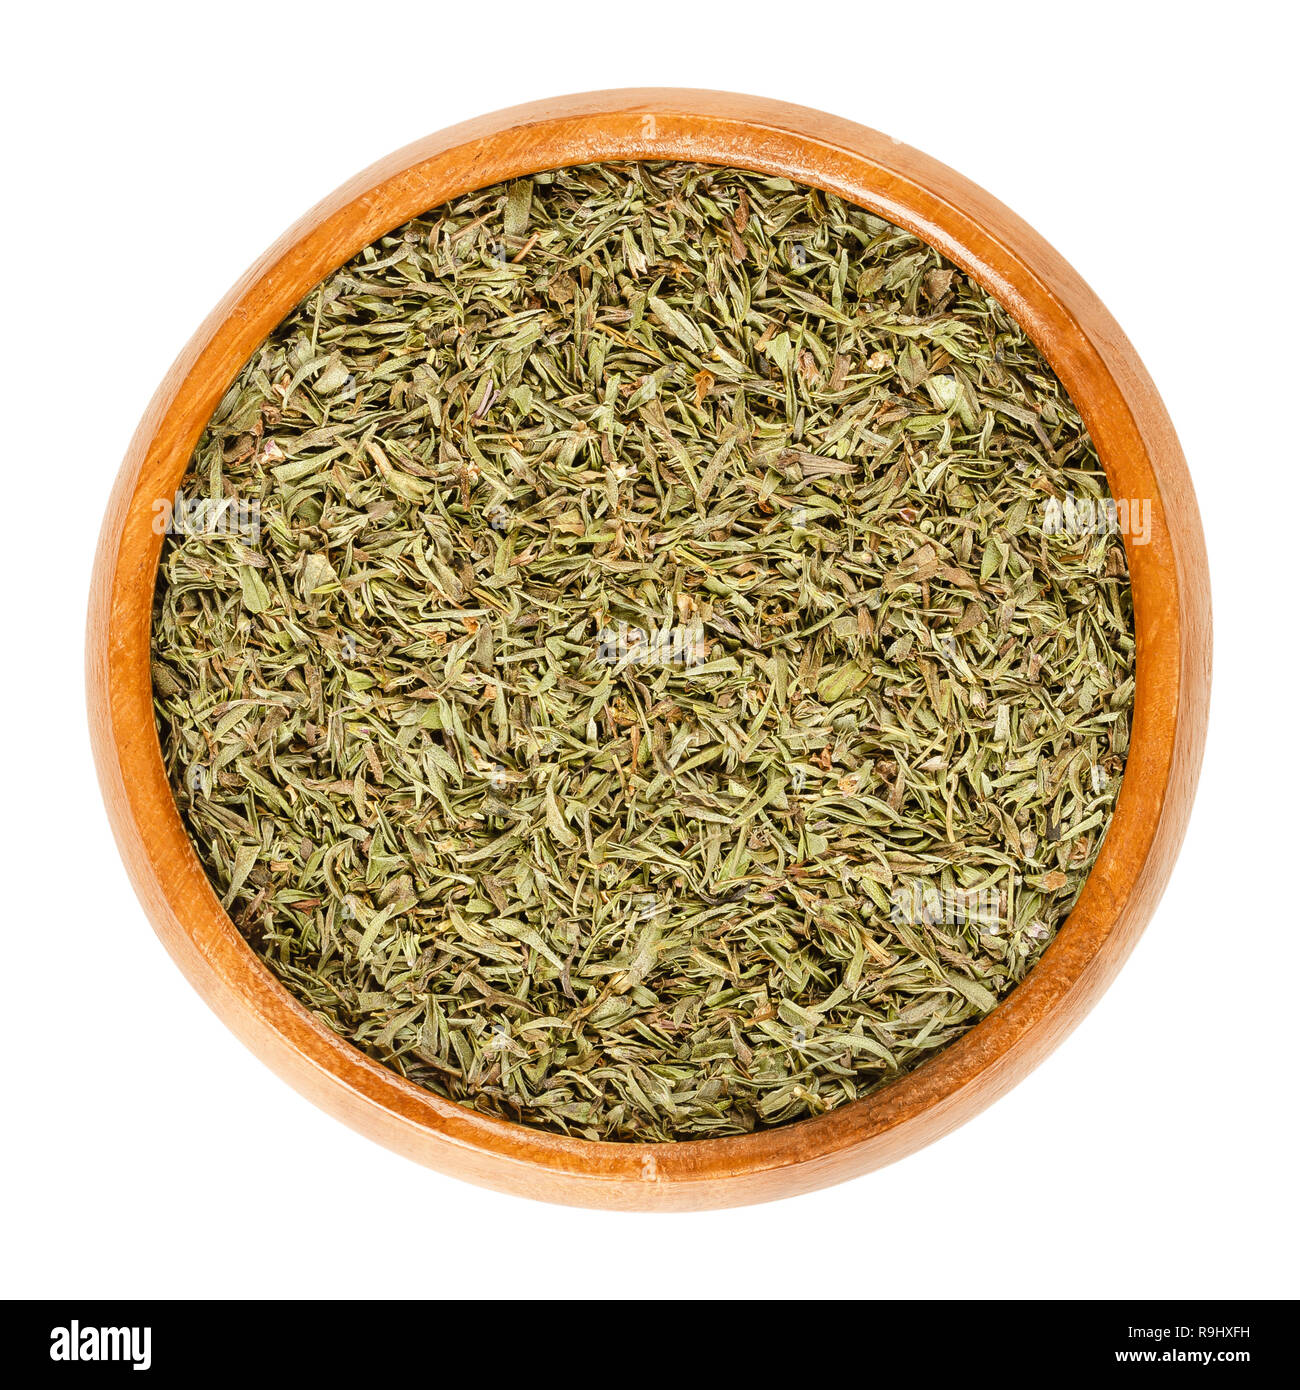 Dried savory in wooden bowl. Chopped summer savory, Satureja hortensis, a herb and seasoning for barbecues, stews and sauces. - Stock Image